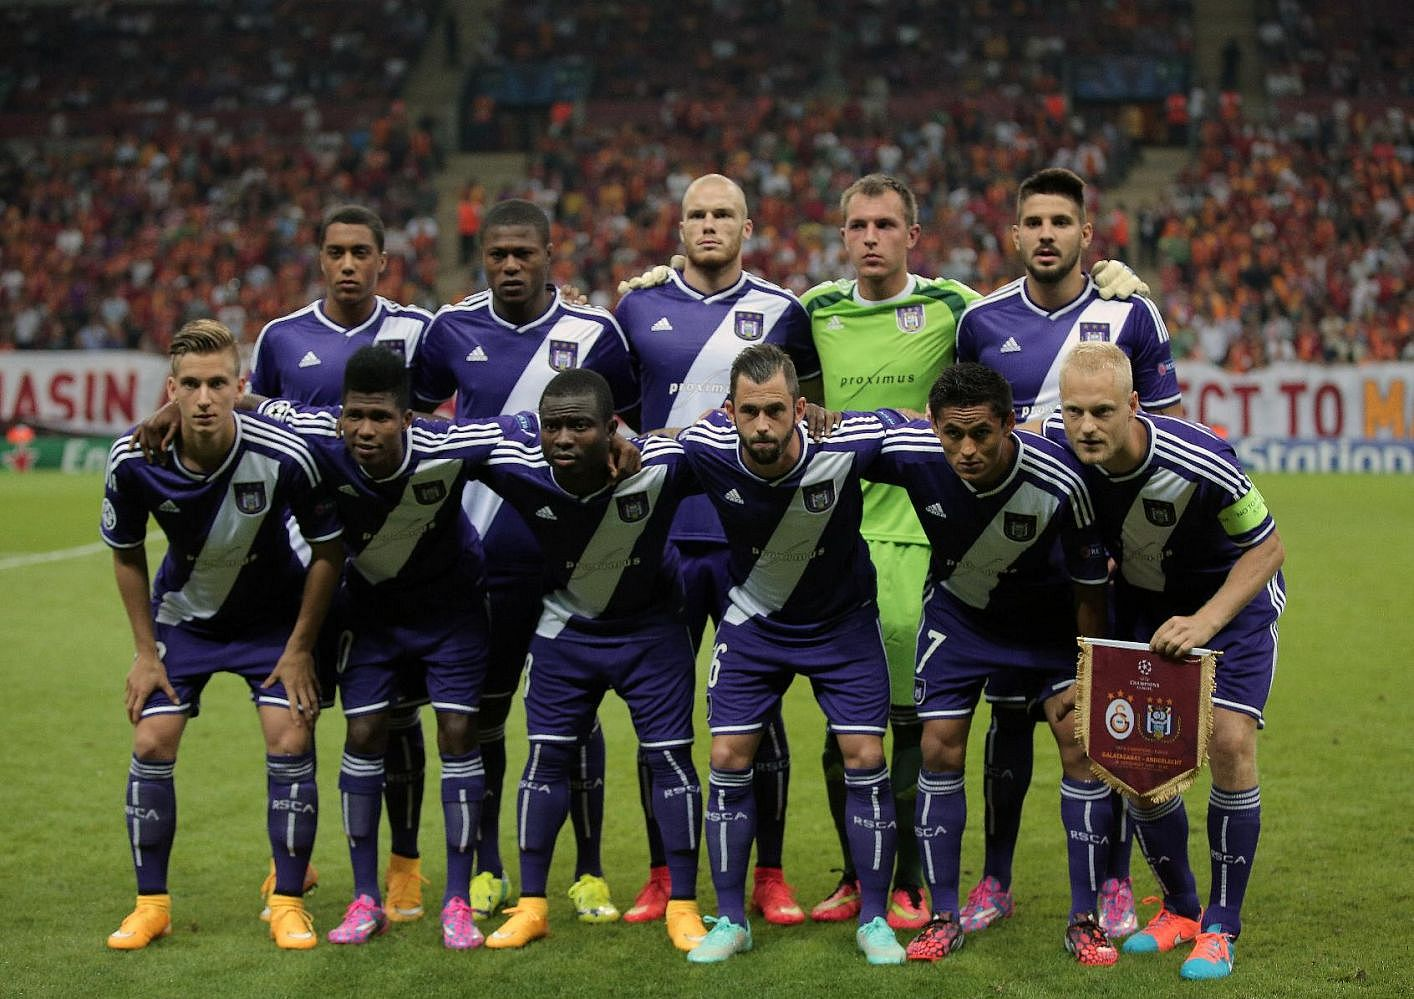 The Anderlecht starting XI line up prior to a 1-1 draw with Galatasaray in Istanbul in 2014.